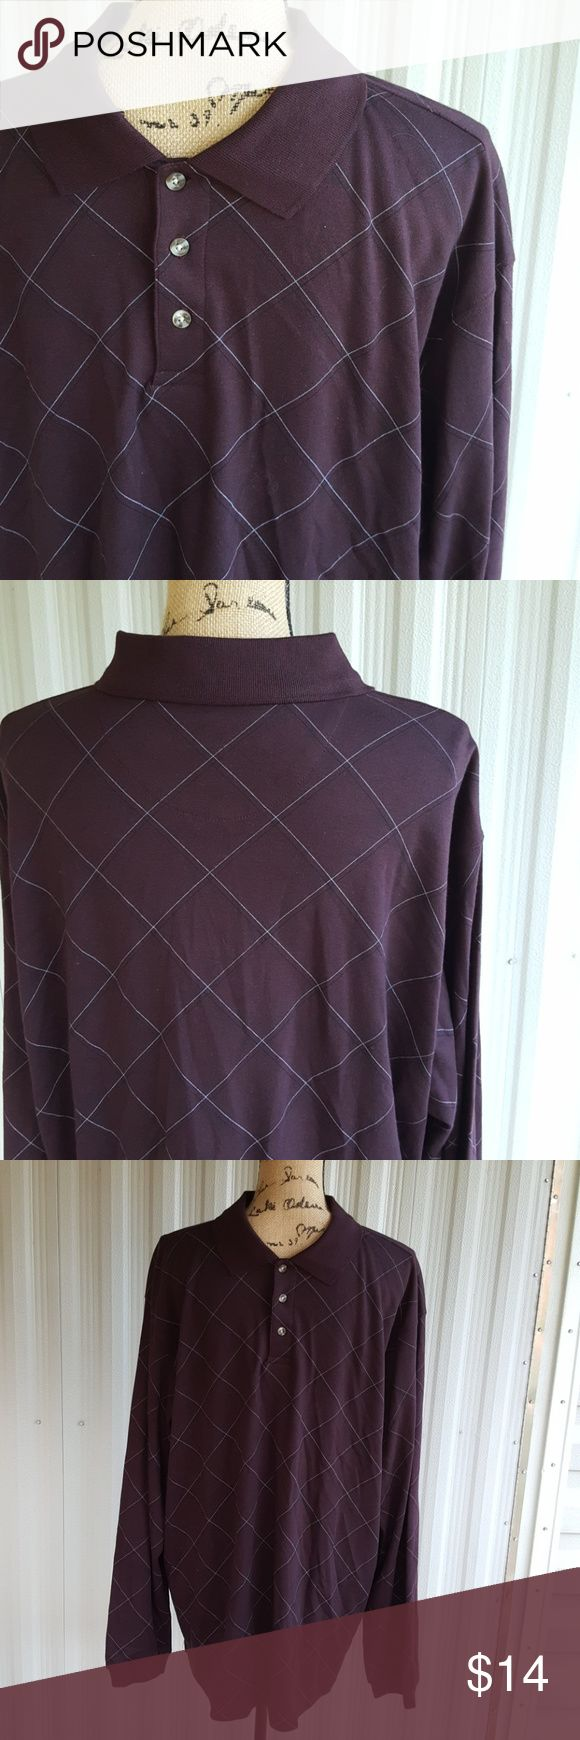 Xl nwot plum saddlebred long sleeve polo New without tags excellent condition plum-colored Saddlebred polo shirt. Deep plum color goes good with any skin town. Nice soft material. saddlebred Shirts Polos